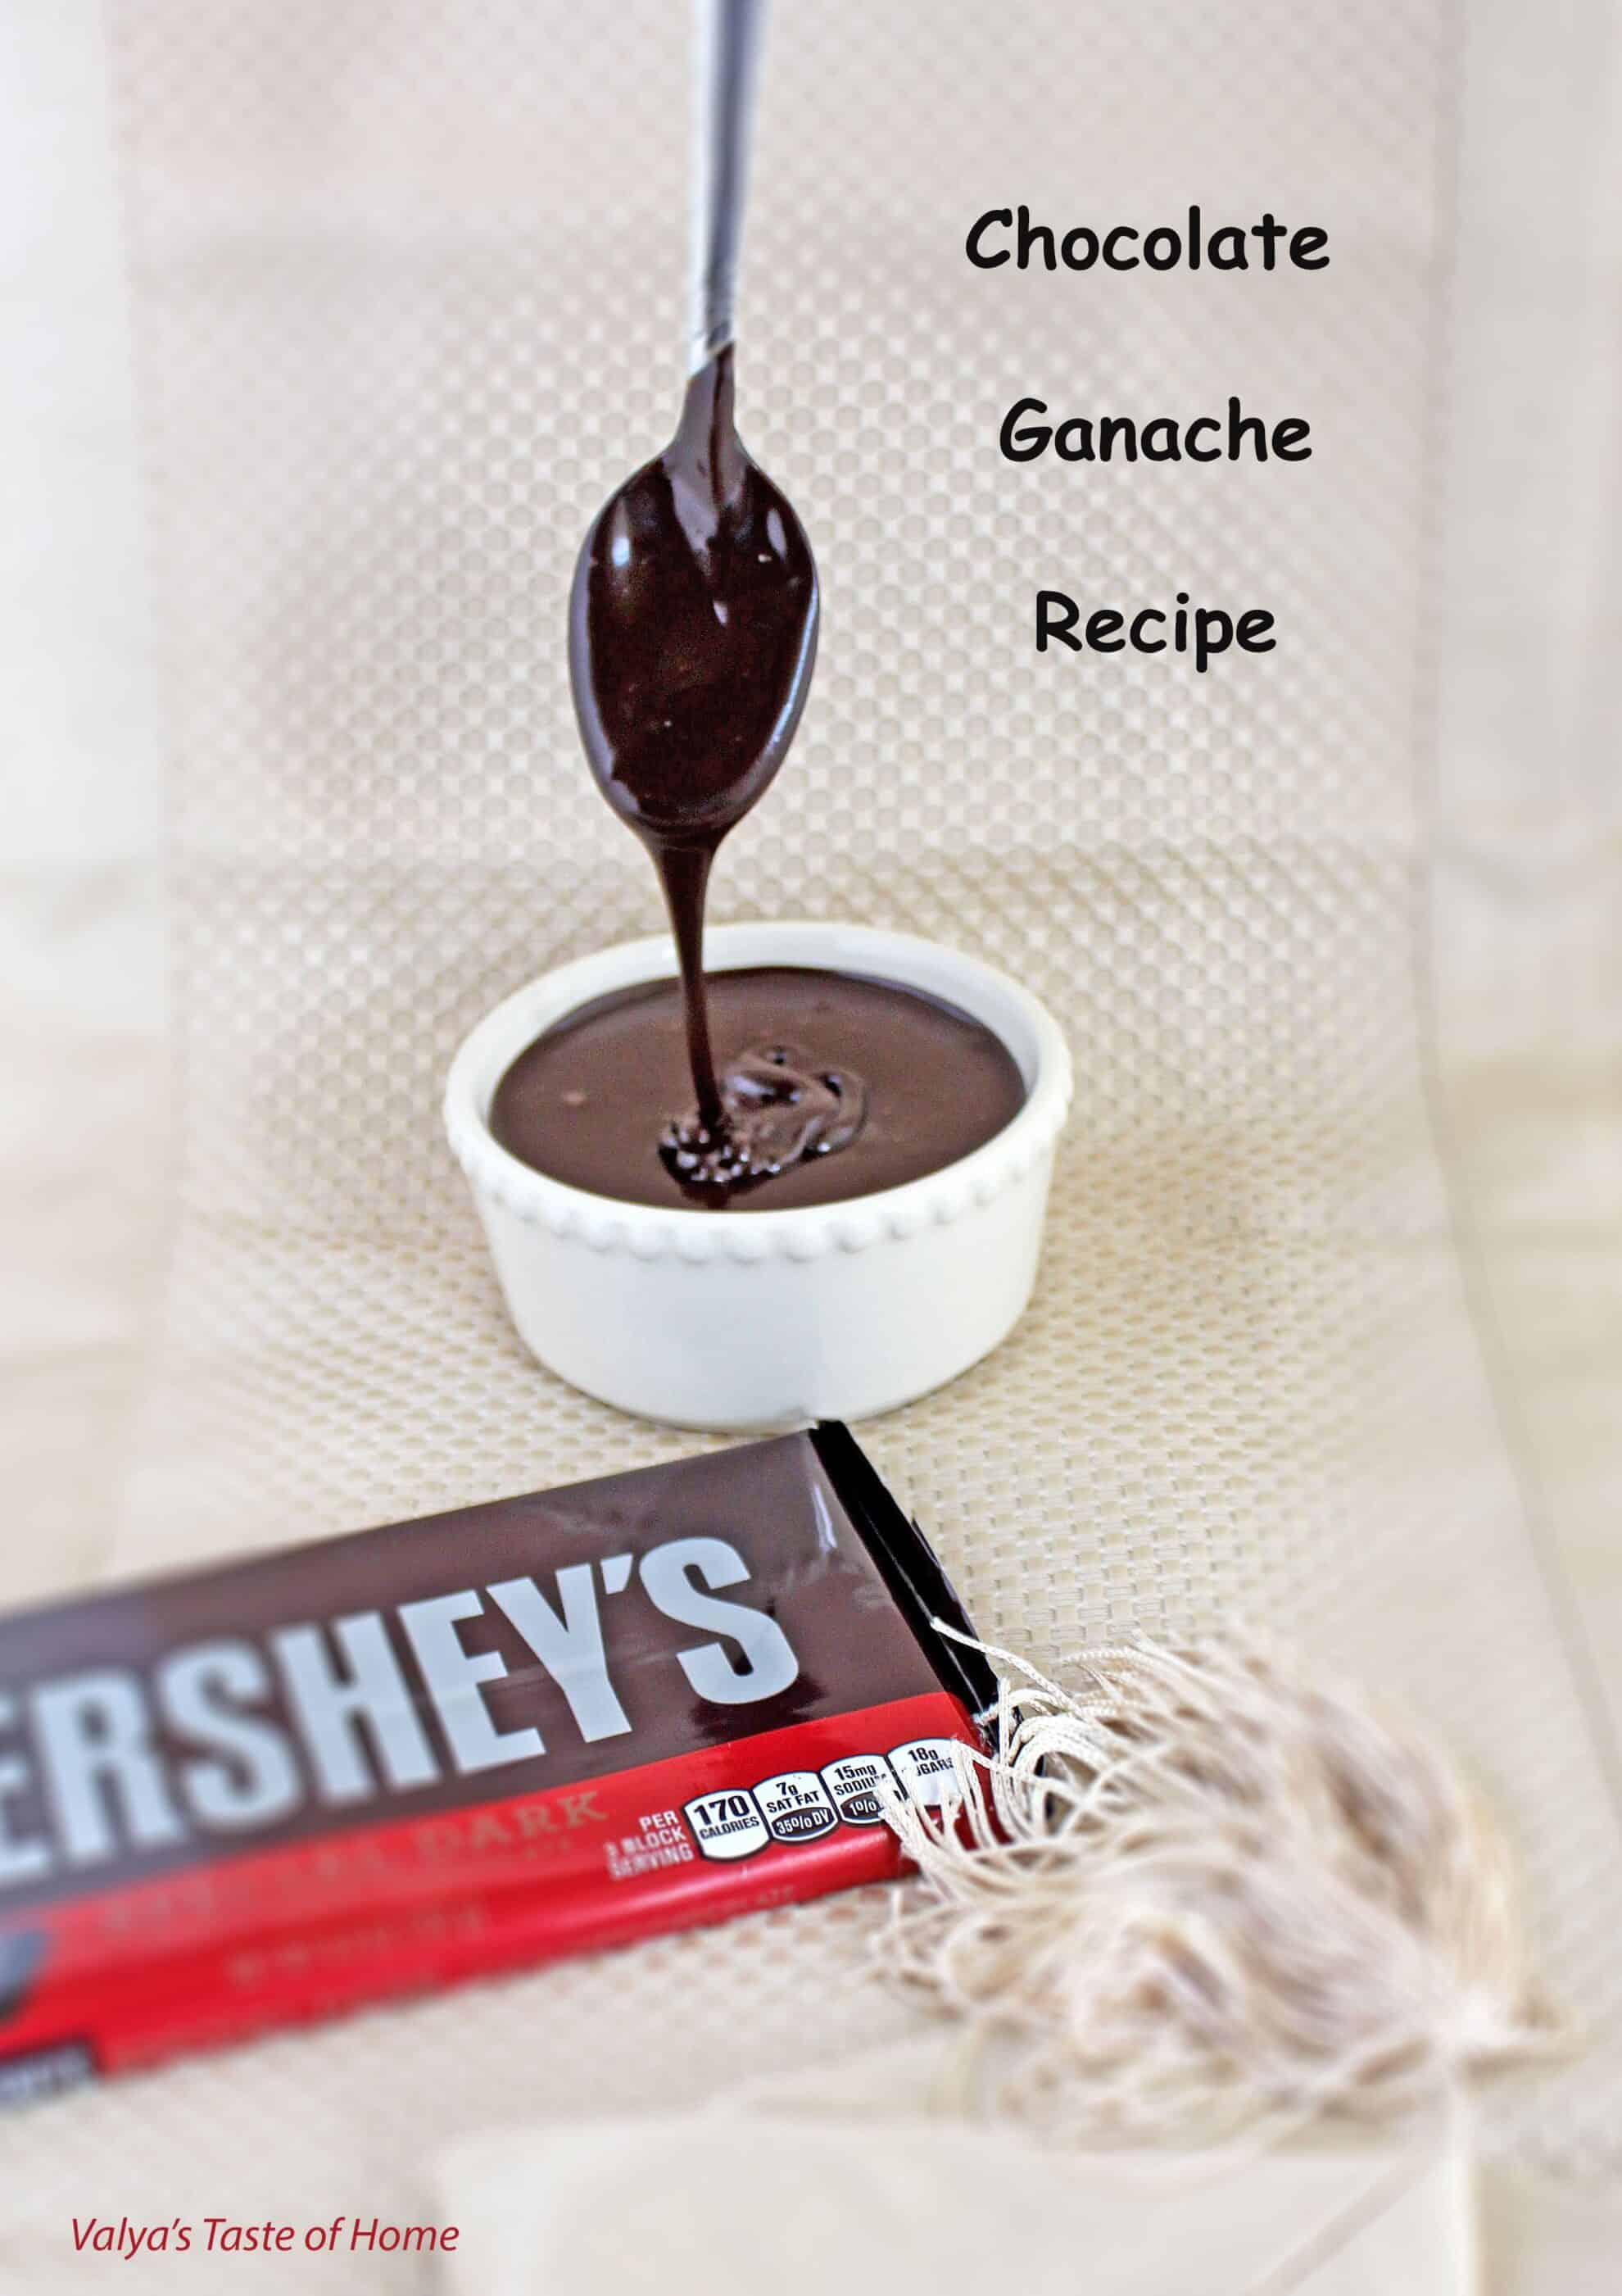 Simple Chocolate Ganache Recipe - Valya's Taste of Home